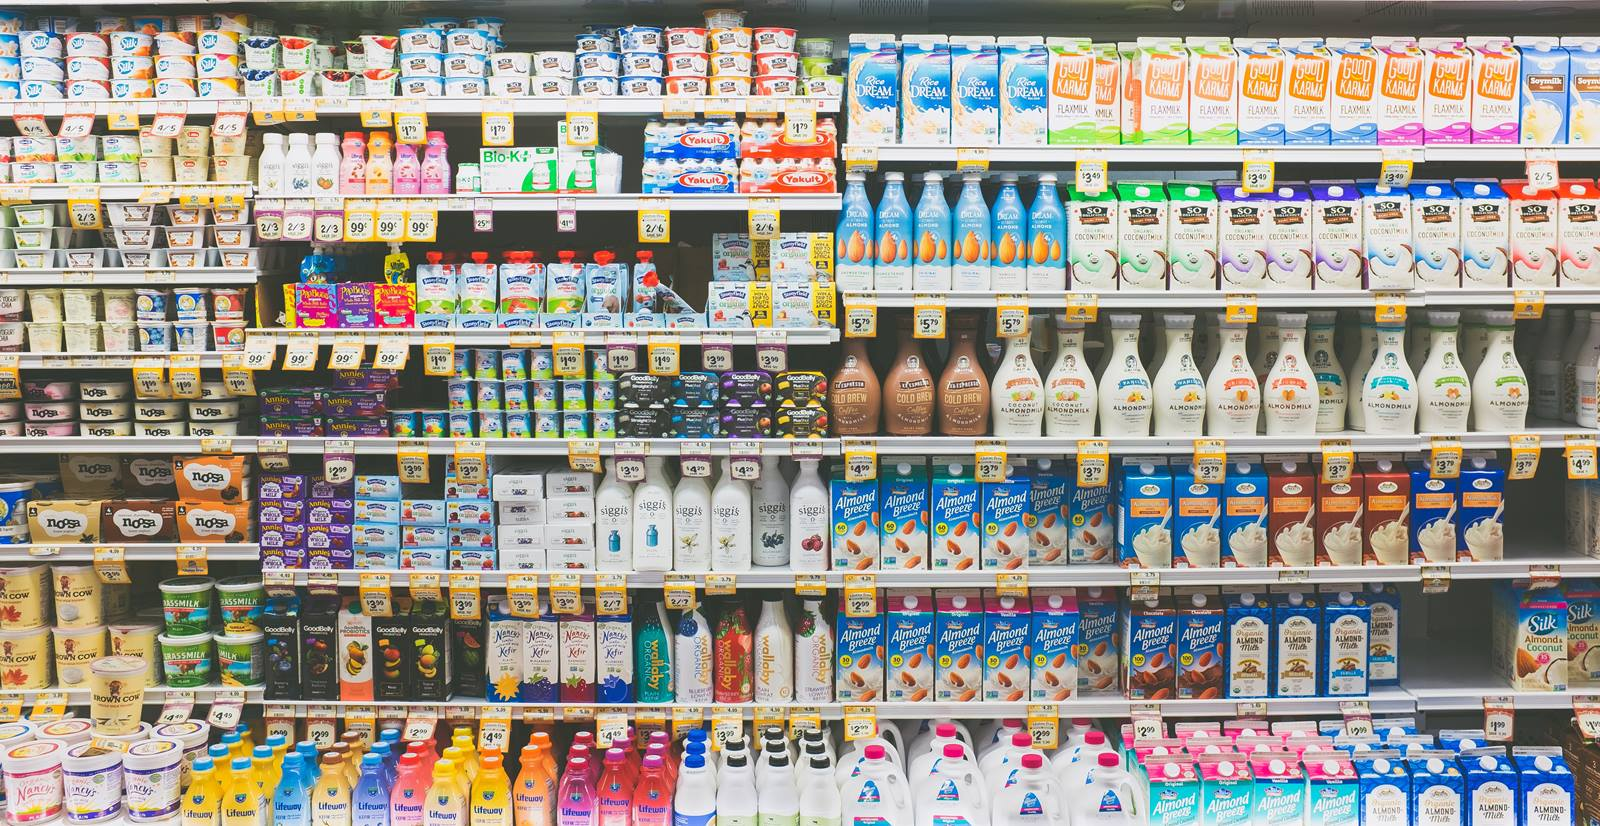 How To Pick The Healthiest Foods At The Grocery Store